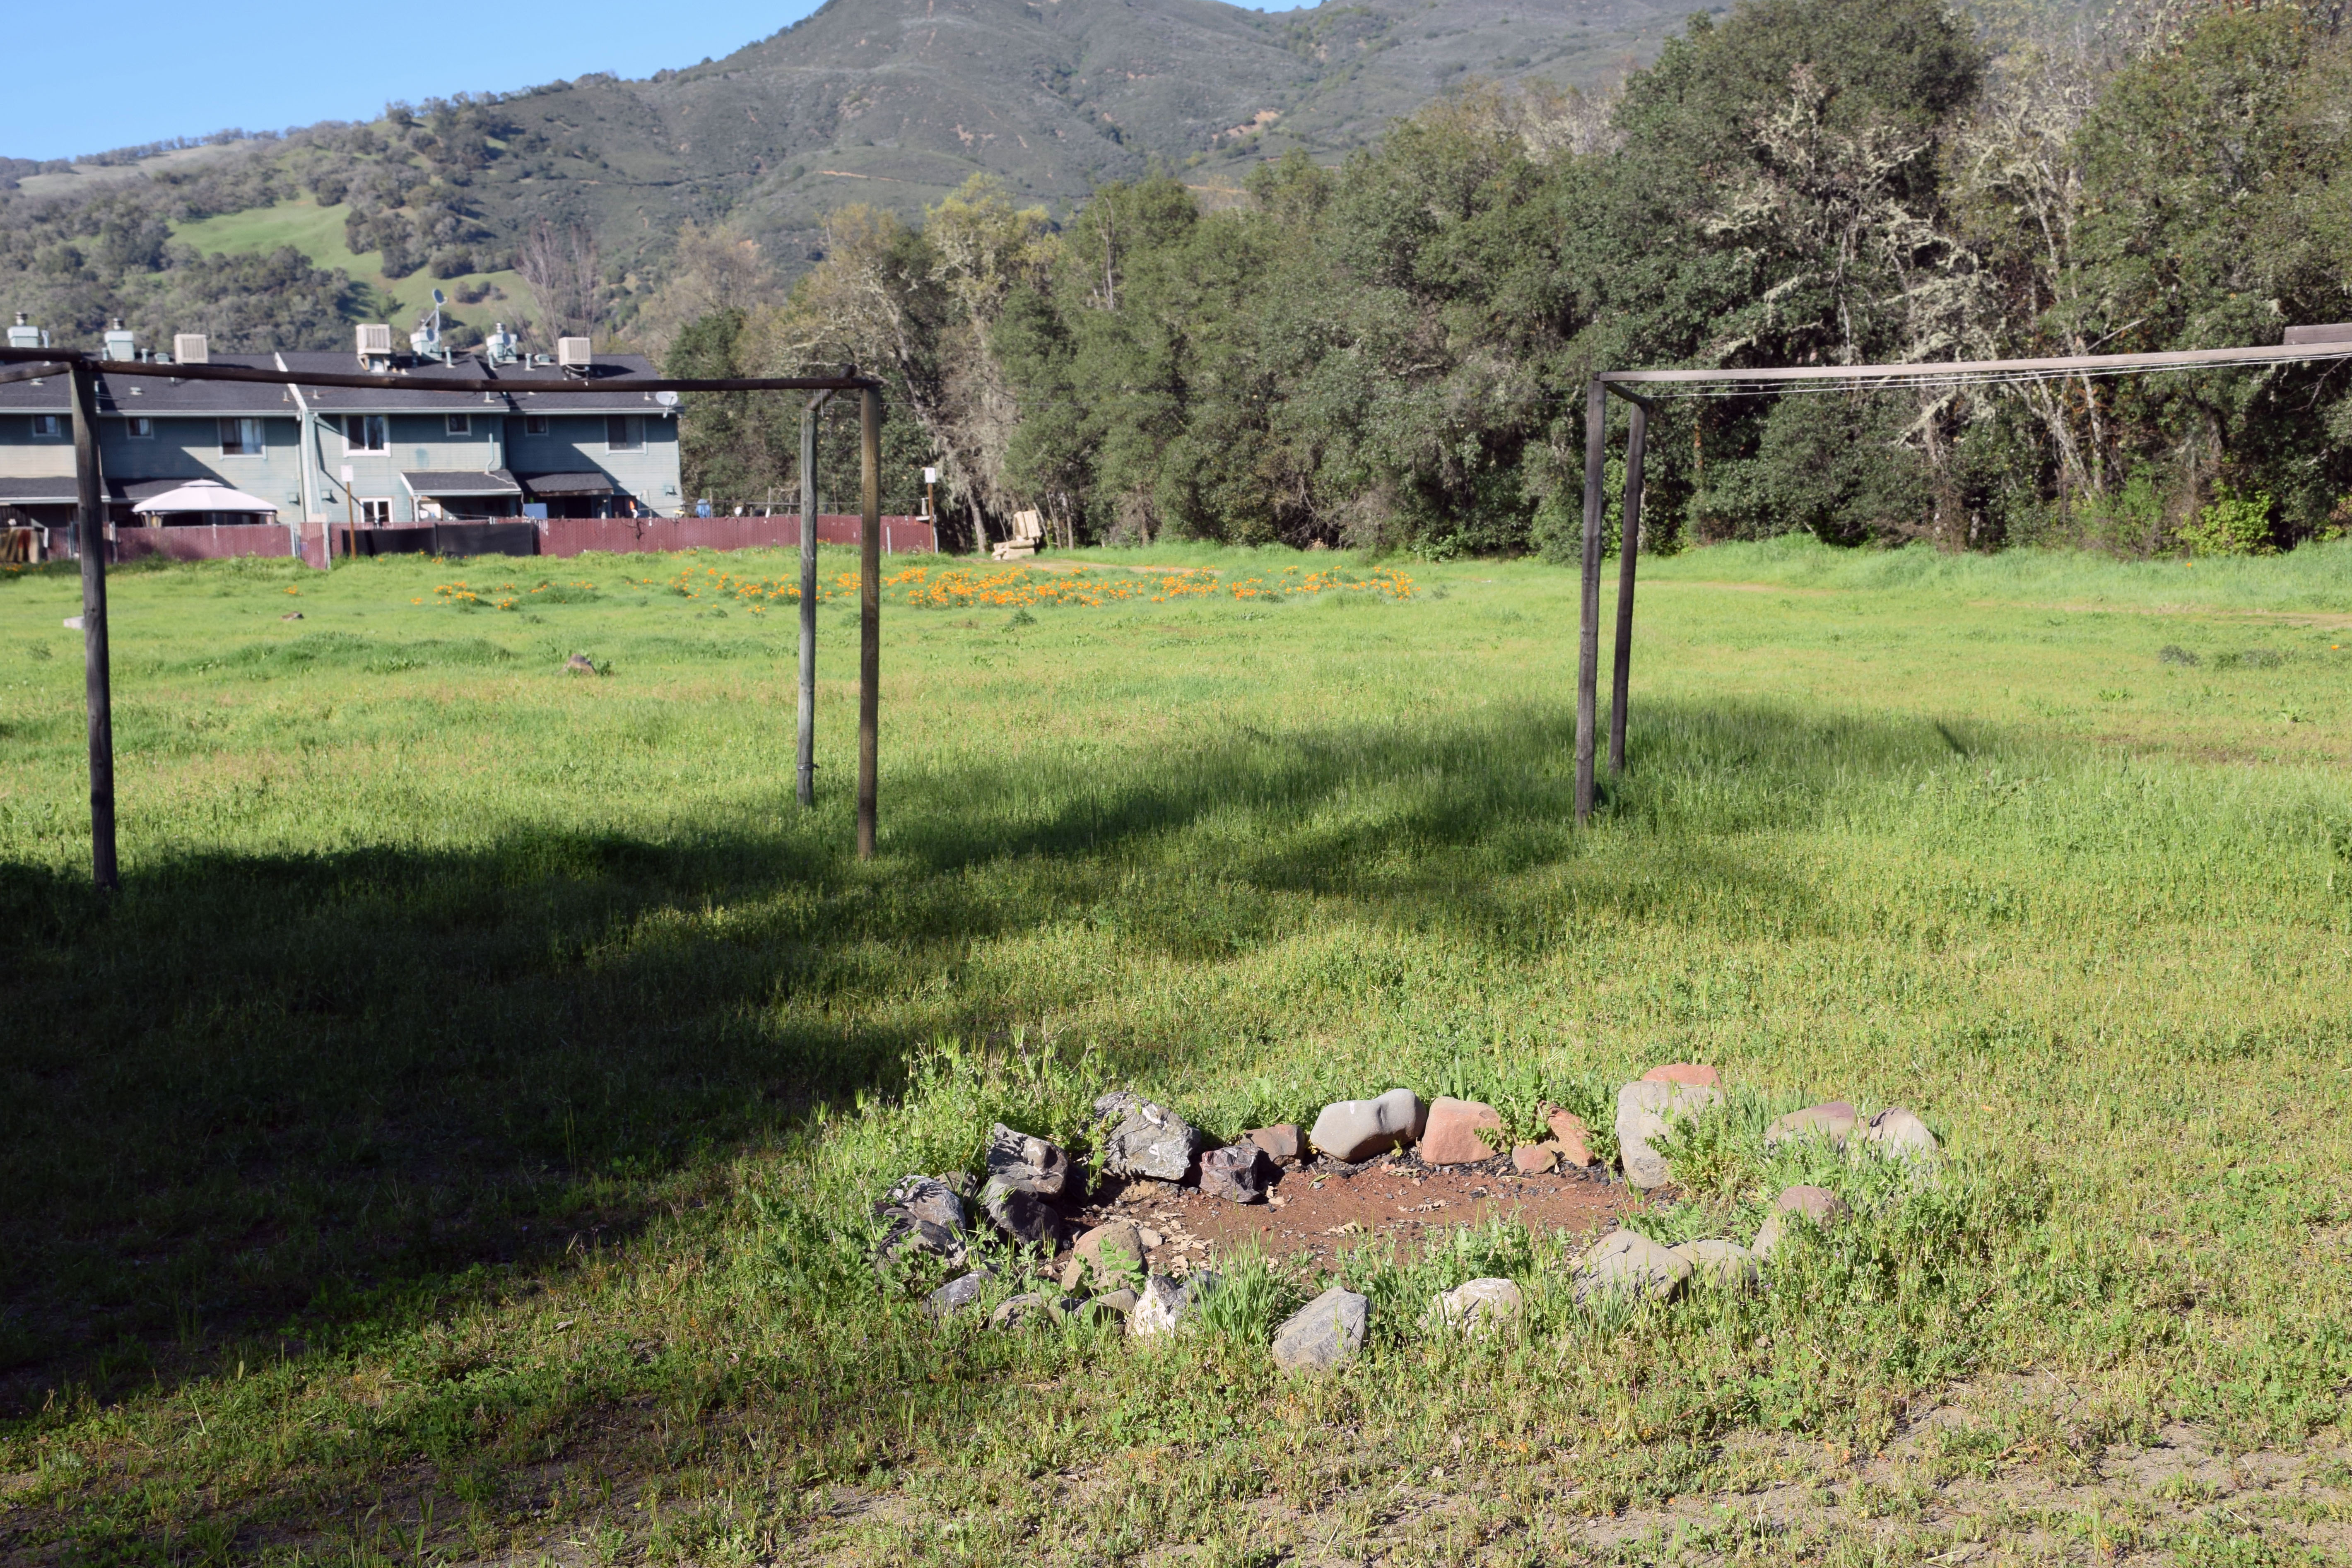 Hopland education center site